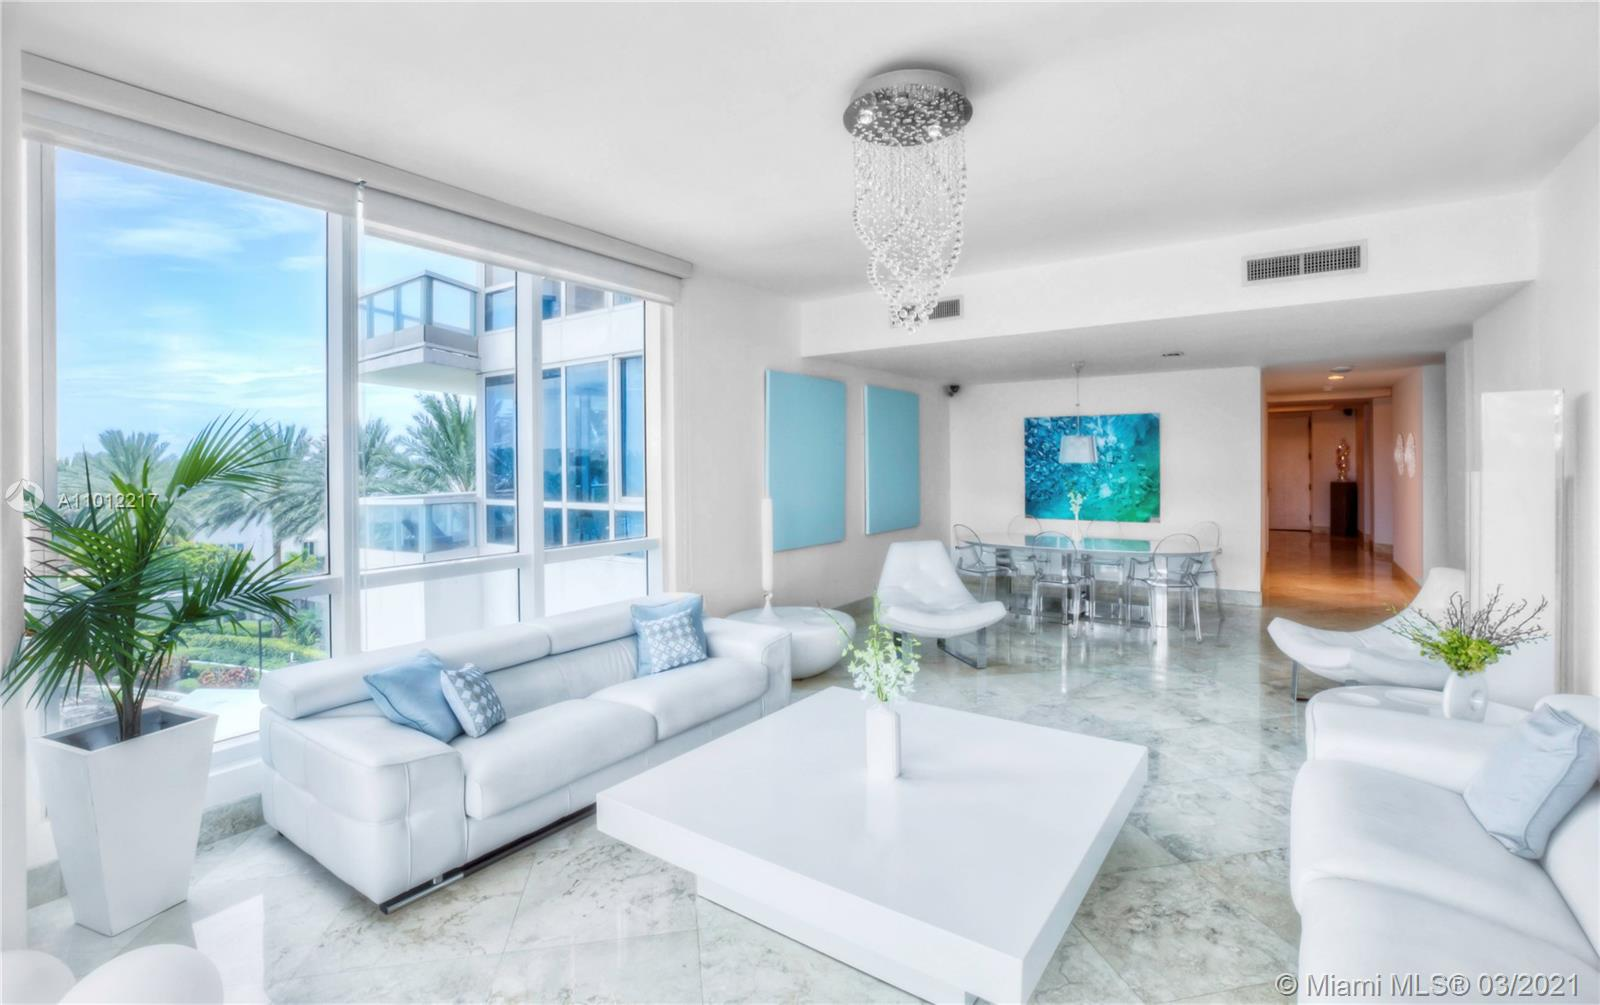 Beautiful 3 bed 3 bath apartment is the best of Continuum 5-star resort living, with treetop views facing East over the beach and lush garden landscapes. It also boasts wonderful West sunset views of Fisher Island and the blue waters of Cruise Ship Alley right from its spacious master bedroom. This bright sprawling corner unit has marble floors through out the 2,122 sf expansive floor plan. The kitchen features high end appliances by Miele and Subzero. This lowest priced 3 bedroom apartment is a great value, giving the feel of a private residence home among all the amazing world class Continuum amenities such as 3 pools, spa, three-level fitness center, tennis courts, restaurant, concierge beach services, children's playroom, and newly renovated 4th floor lounge and coffee area.